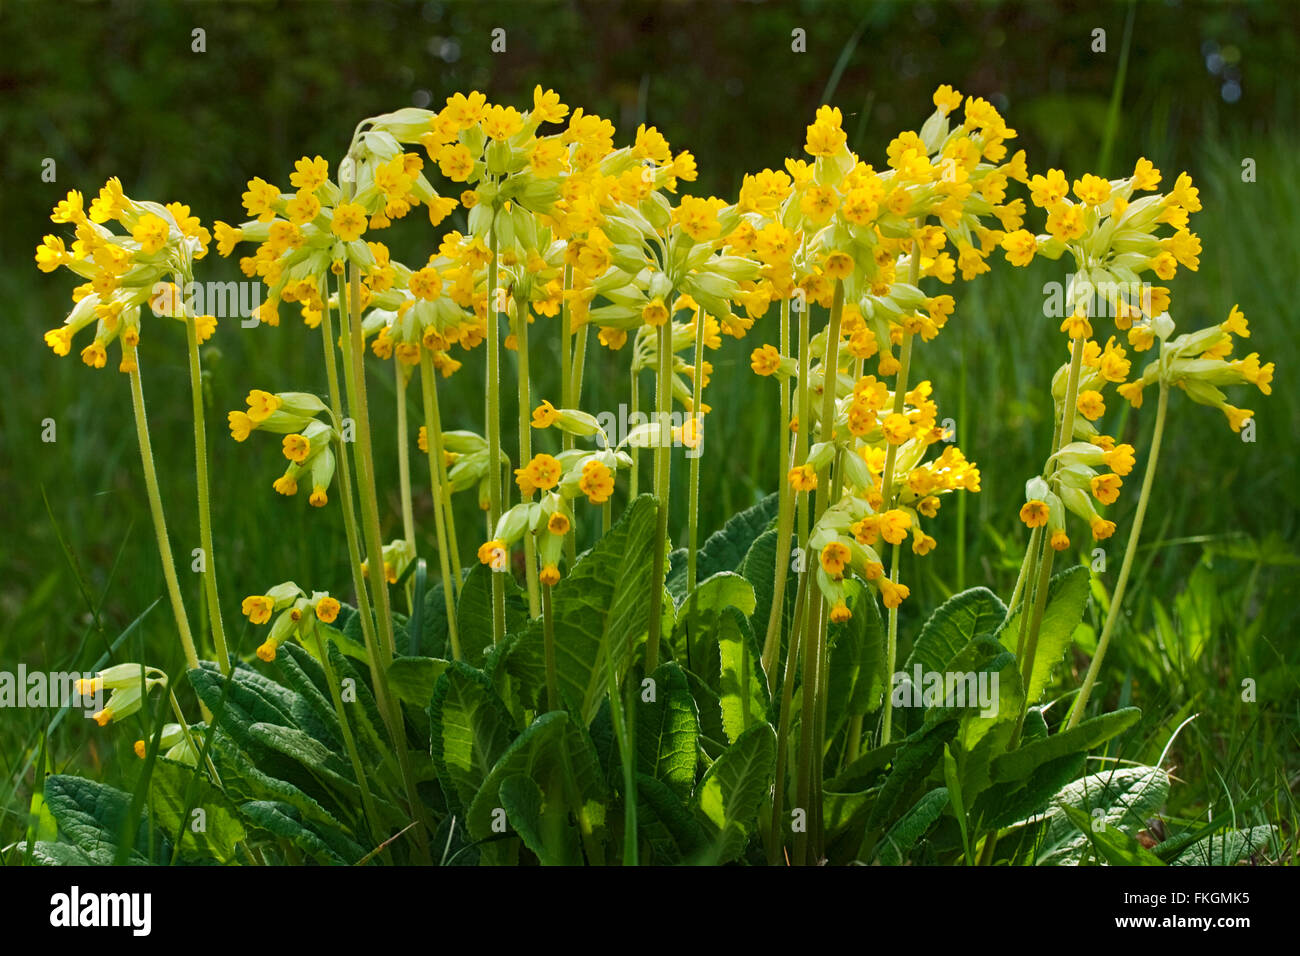 Cowslip (Primula veris) large group of yellow plants with green hairy leaves at base. Taken in landscape format. - Stock Image